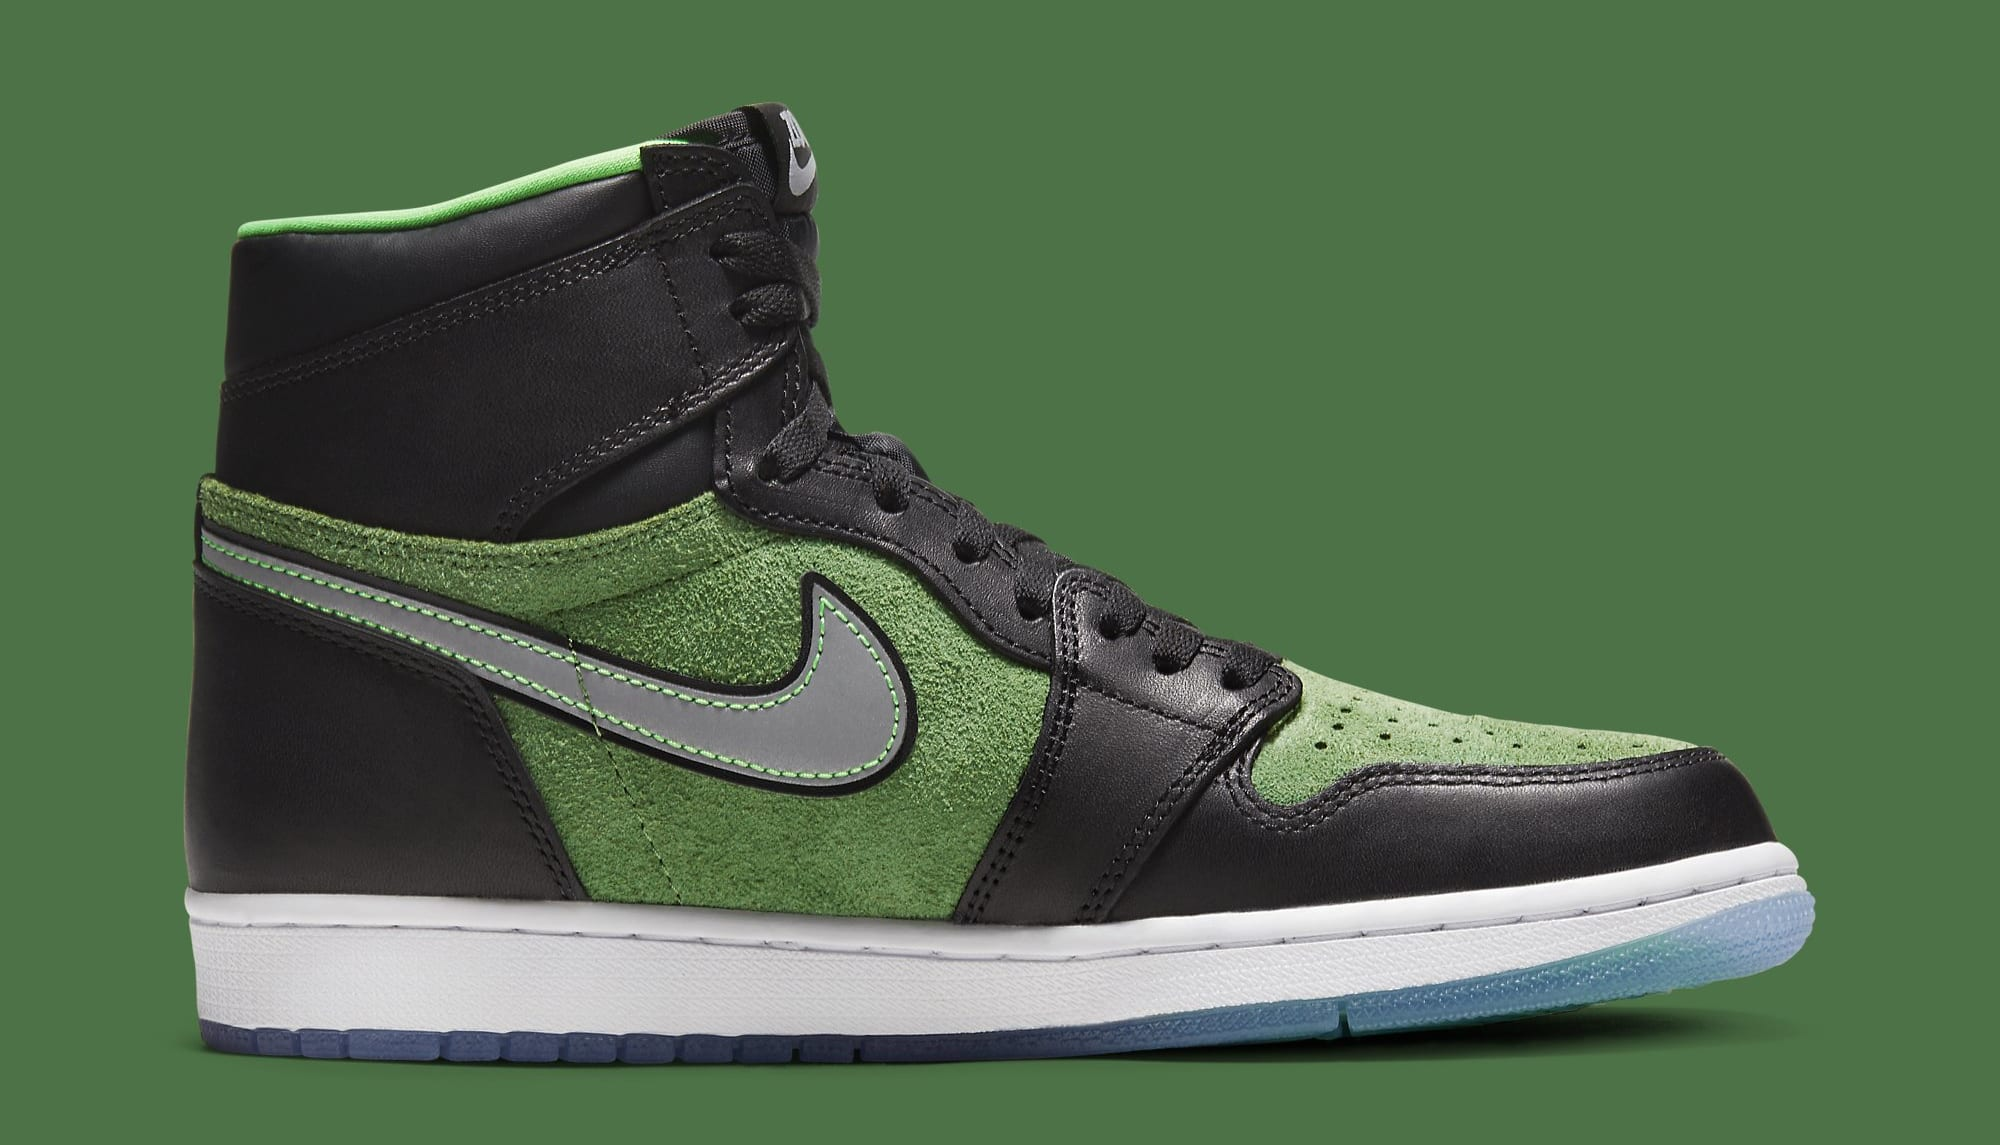 Air Jordan 1 High Zoom 'Rage Green' CK6637-002 Medial